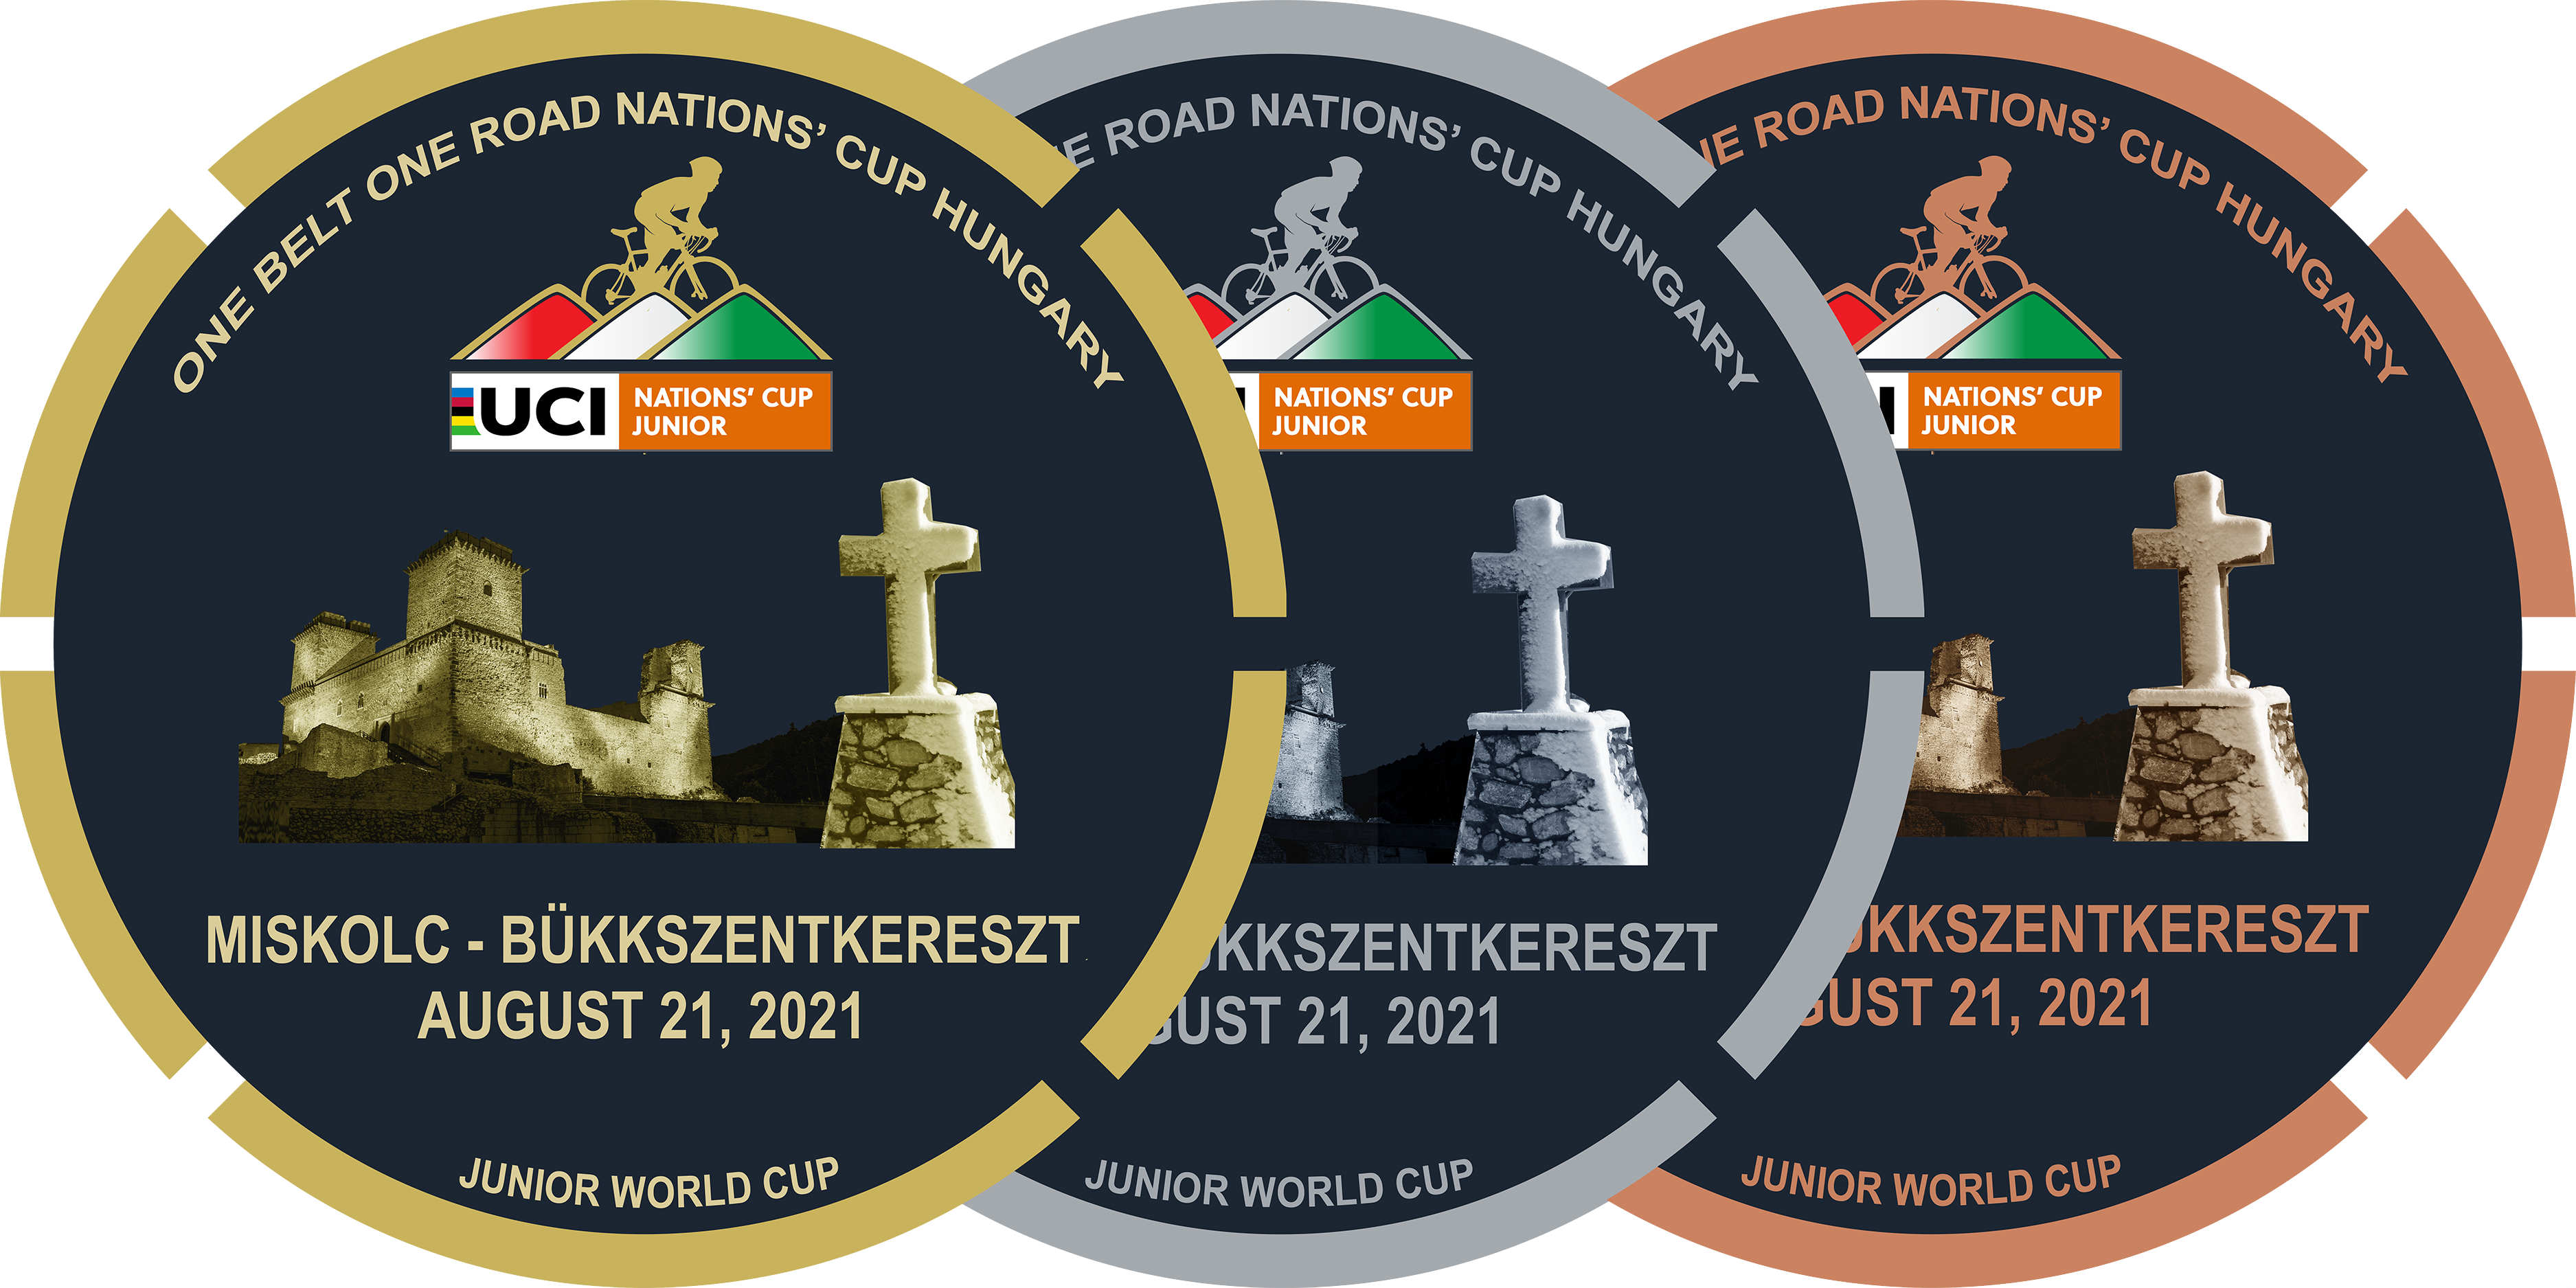 One Belt One Road Nations Cup Hungary Stage 2